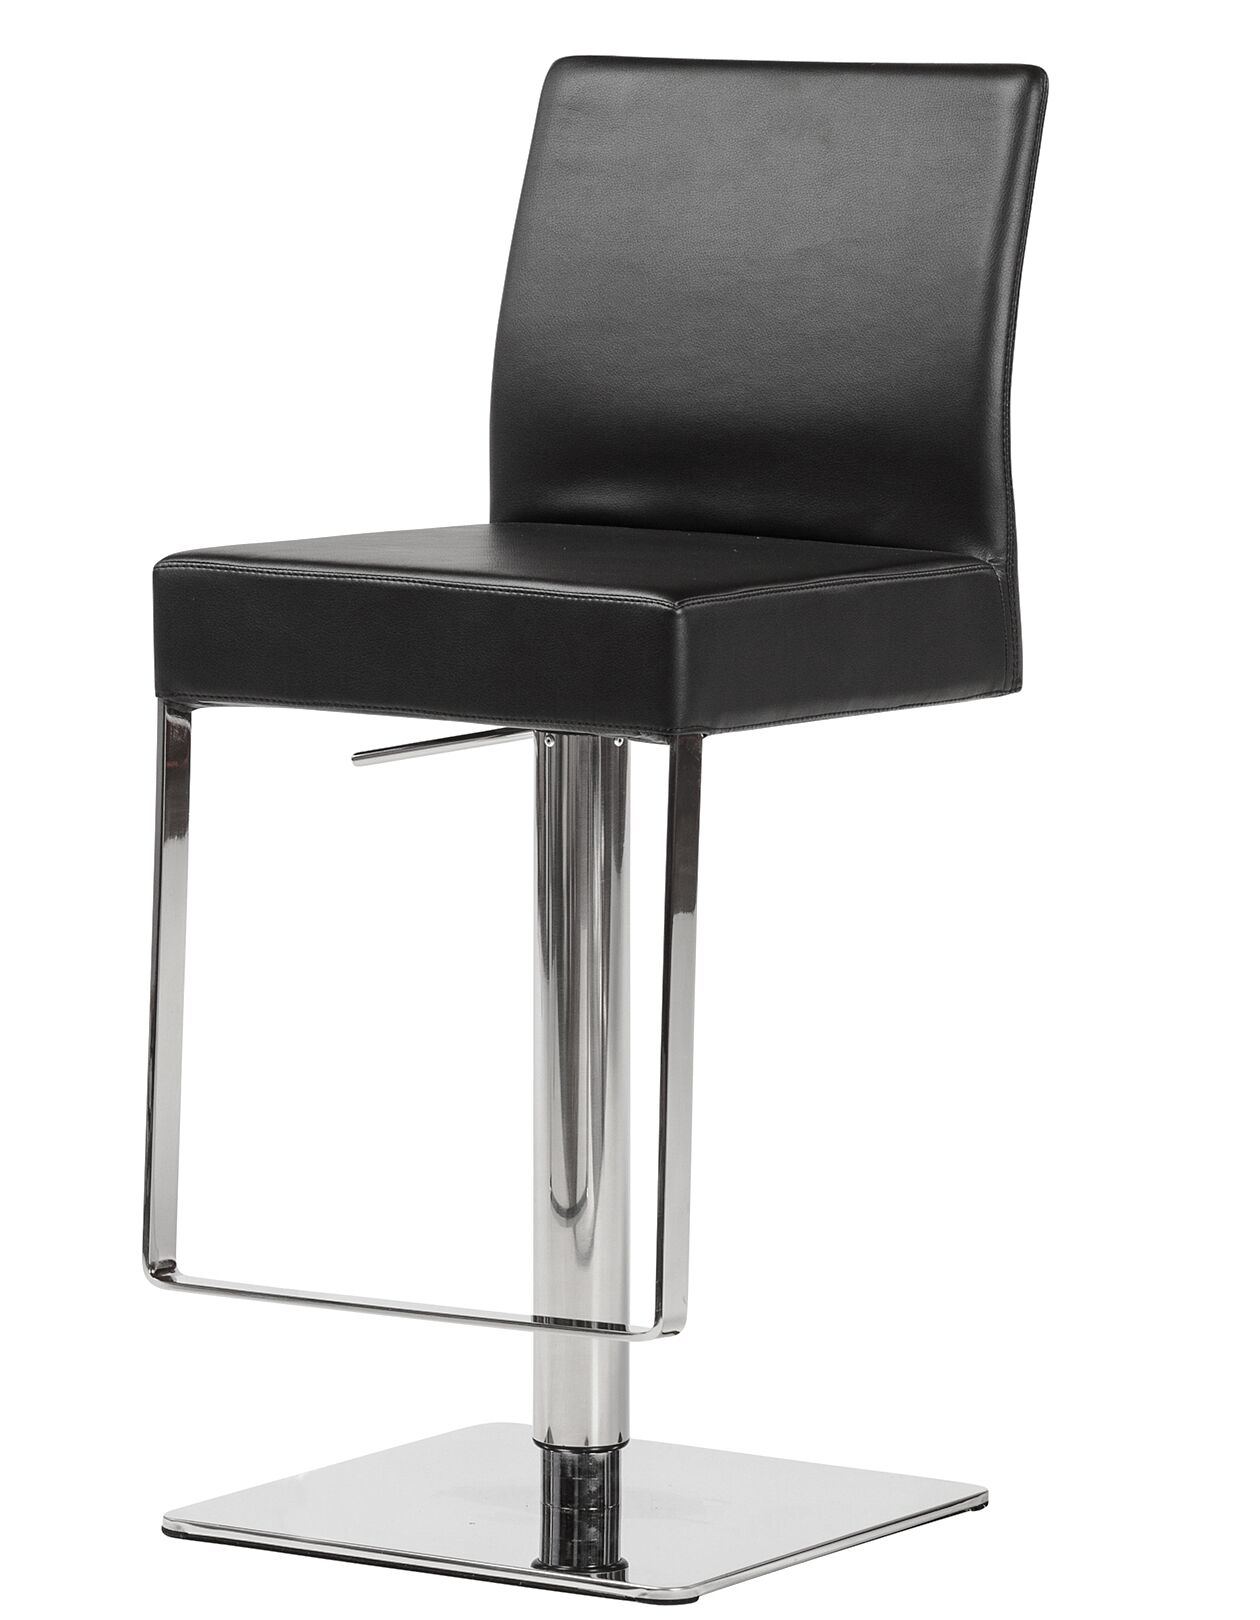 Emert Hydraulic Adjustable Swivel Bar Stool Upholstery: Black